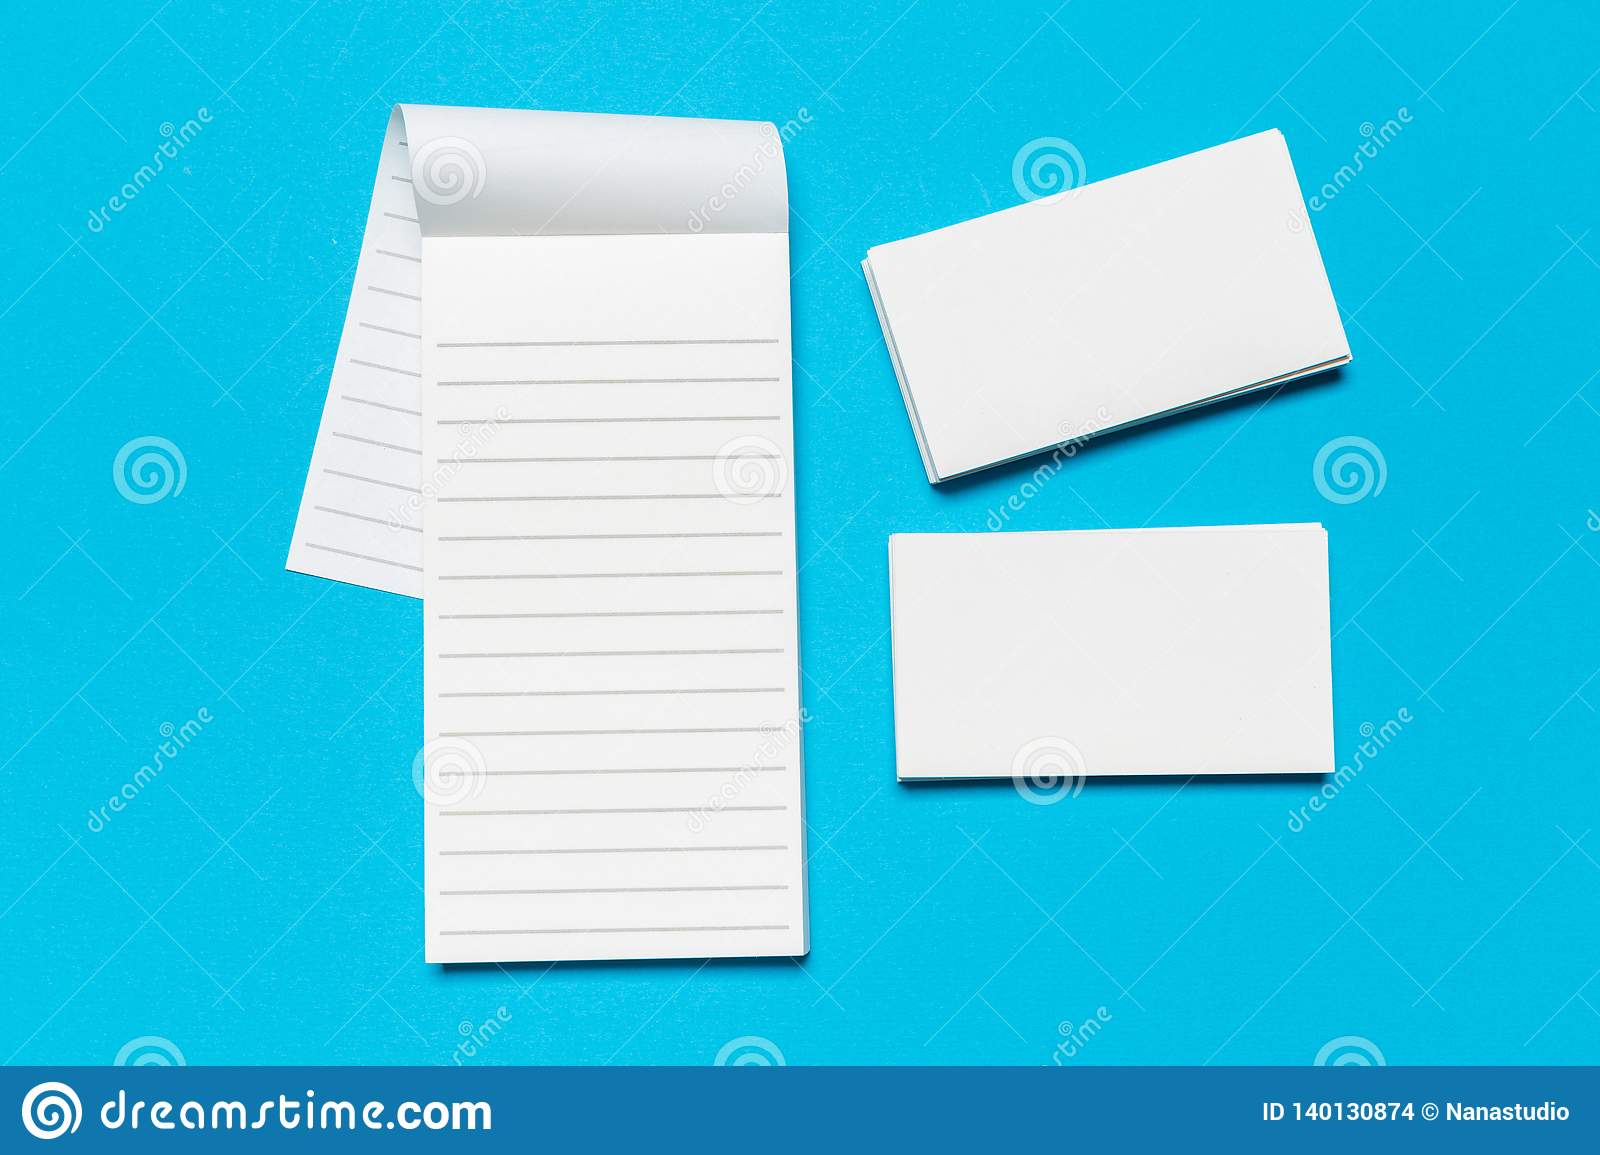 Blank white business cards on blue background. Mockup for branding identity